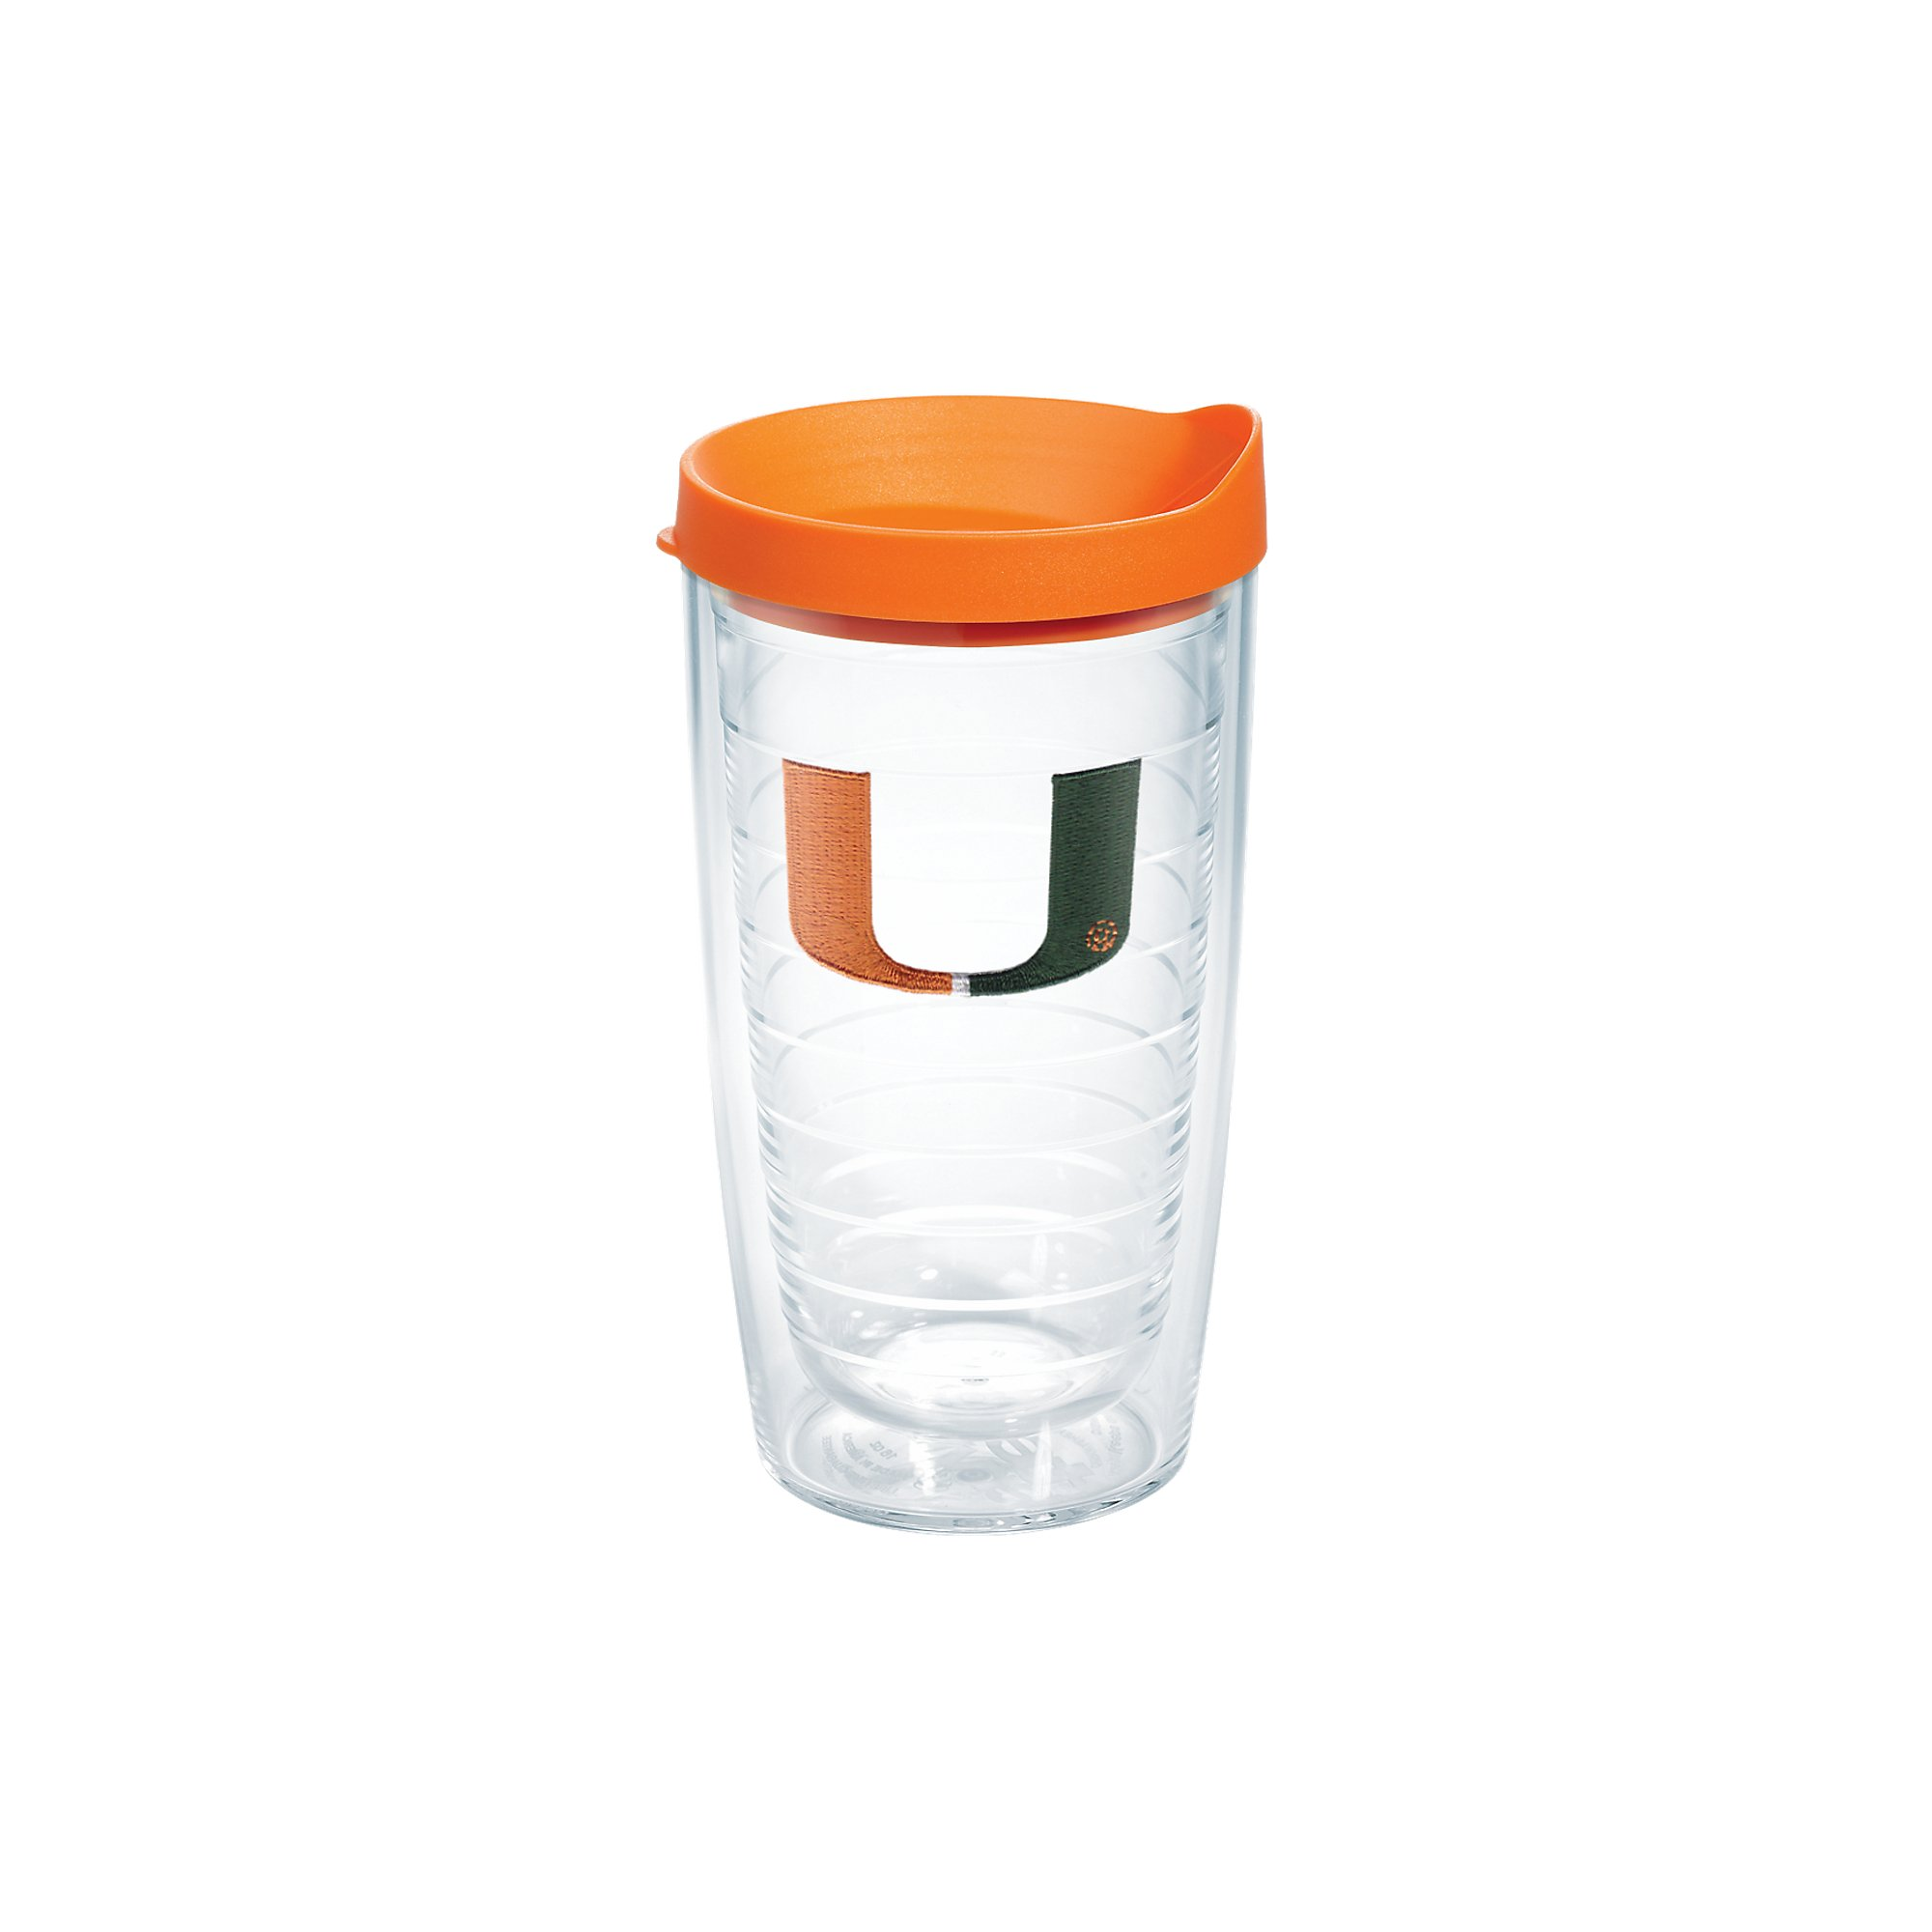 Tervis 1056610 Miami Hurricanes Logo Tumbler with Emblem and Orange Lid 16oz, Clear